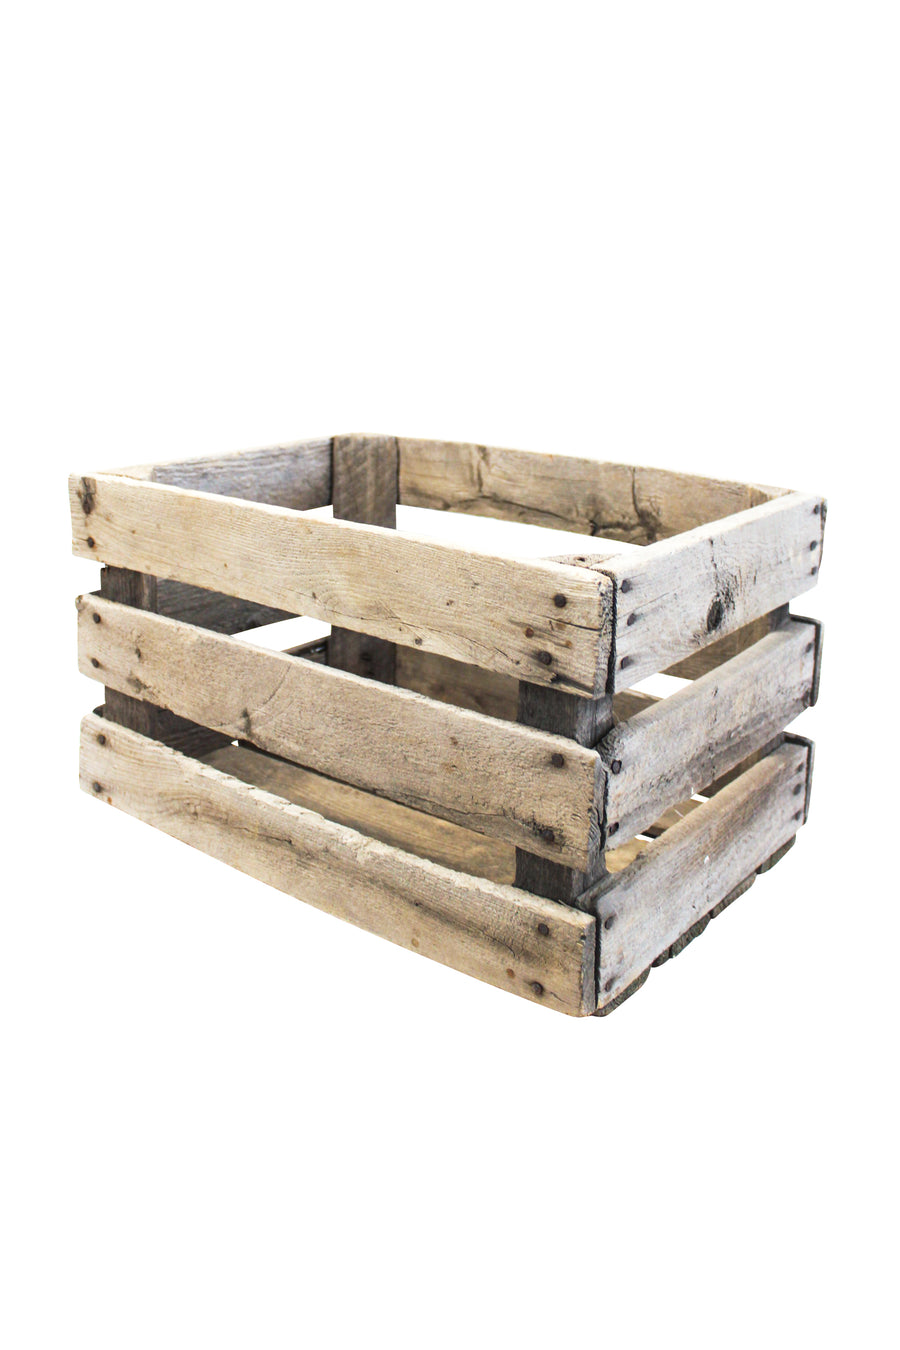 Slotted Wooden Crate